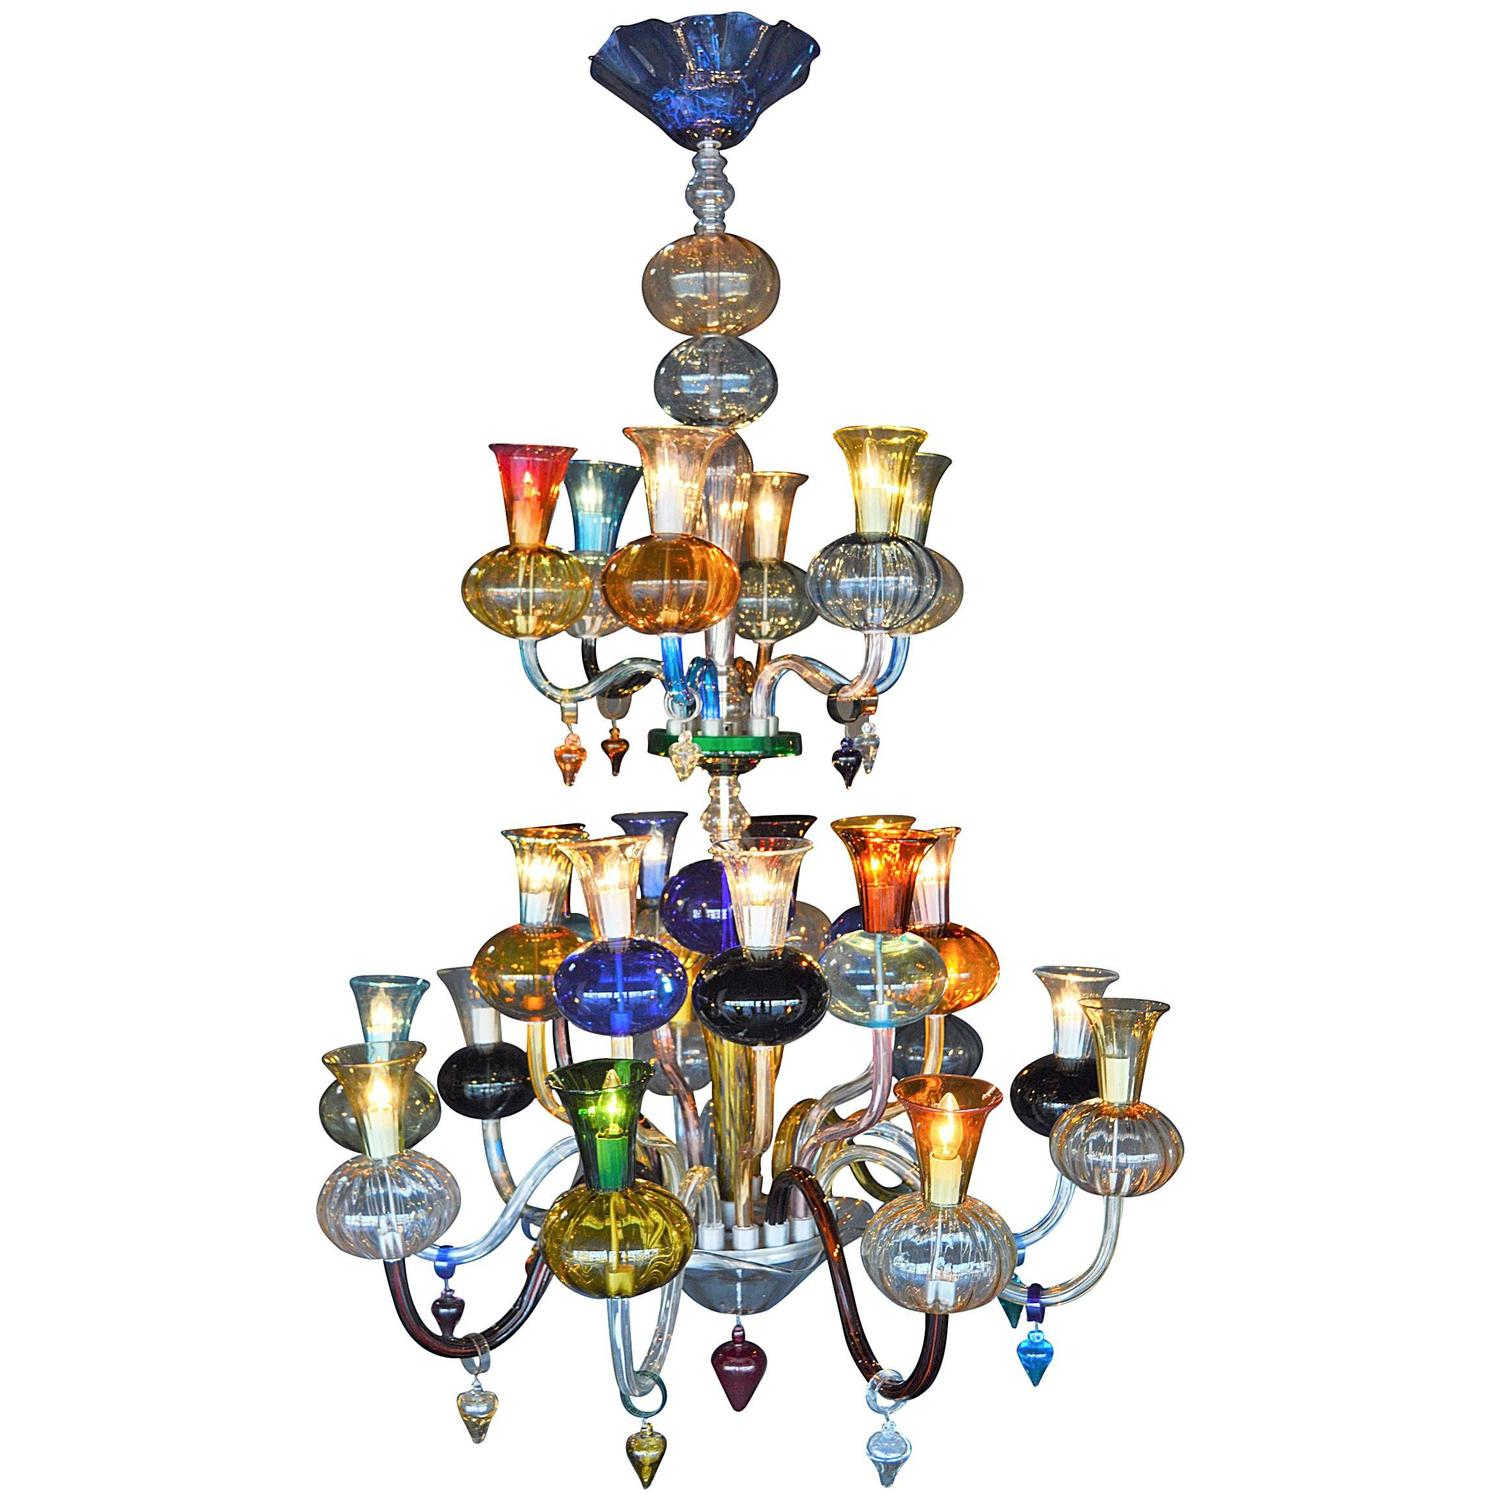 Multicolored Hand Blown Glass Chandelier For Sale at 1stdibs